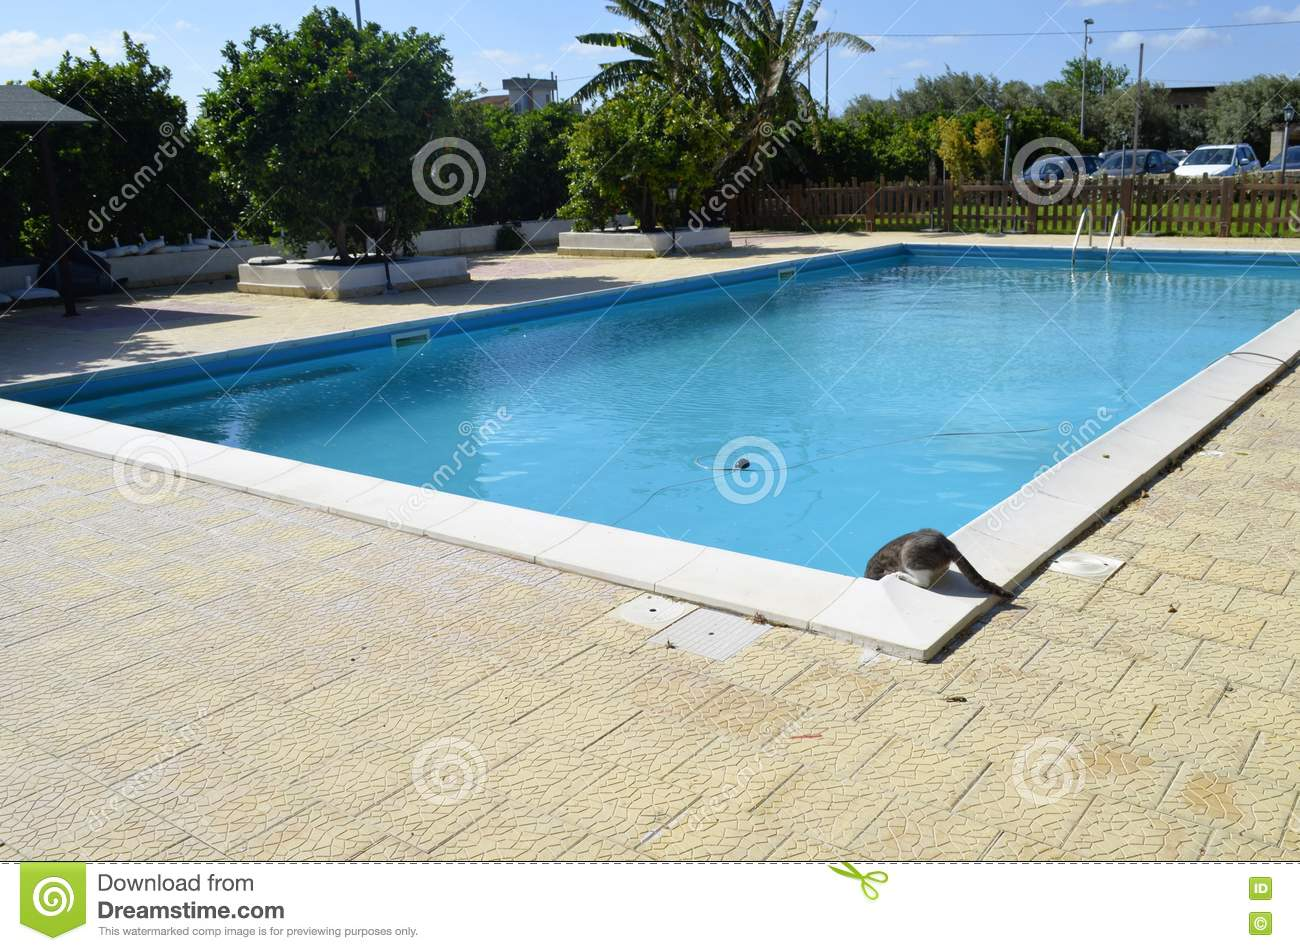 Chat buvant dans la piscine photo stock image 70577036 for Apprendre a plonger dans la piscine